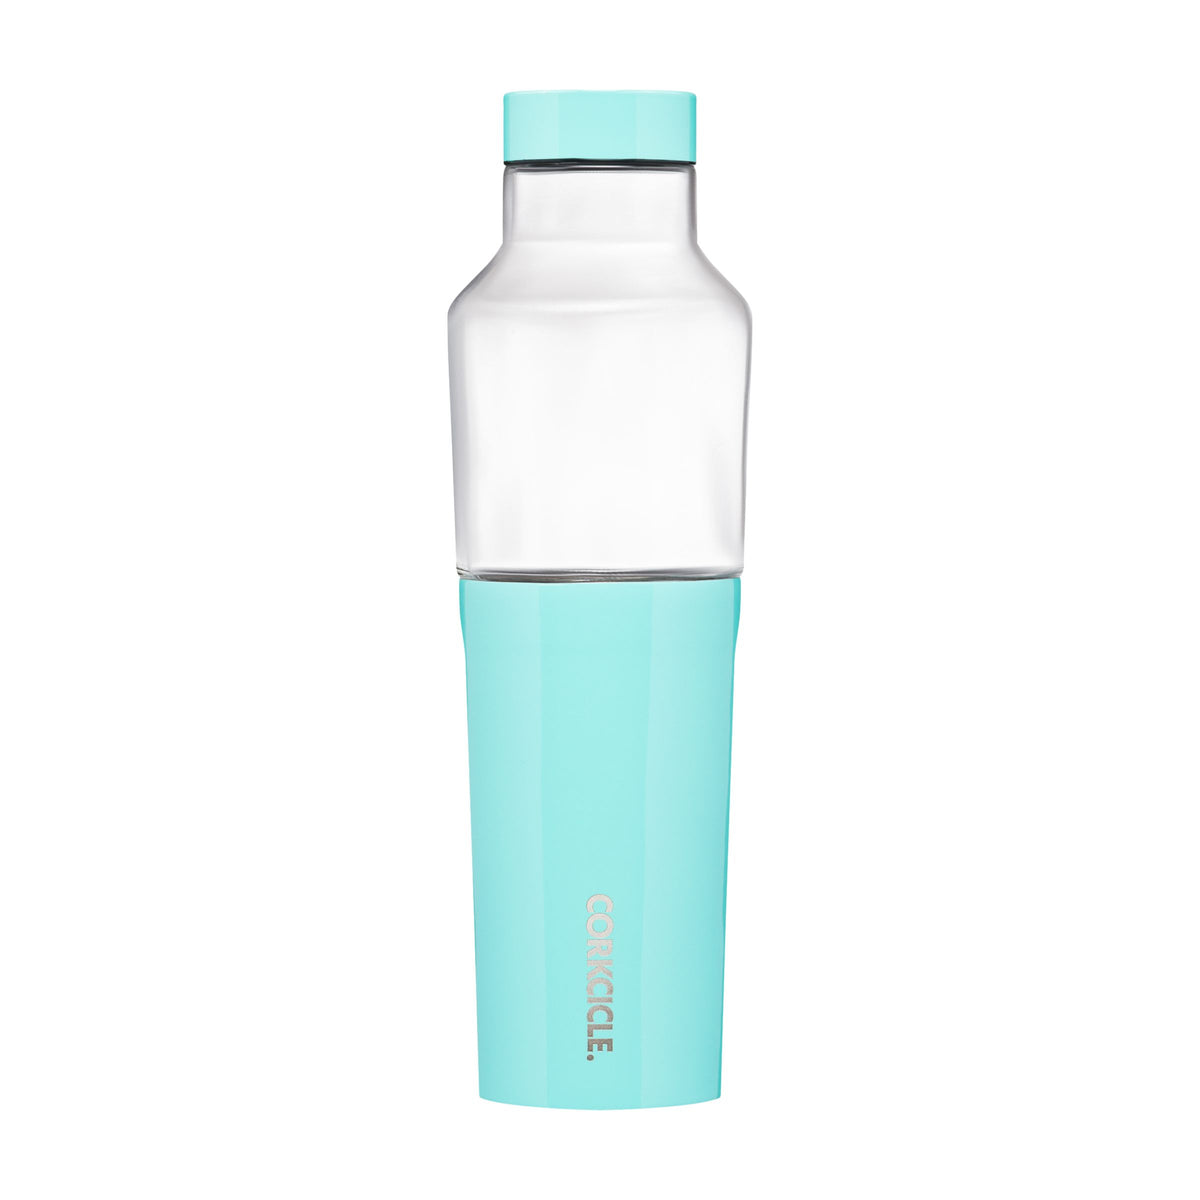 CORKCICLE - Hybrid Canteen Turquoise 20 oz